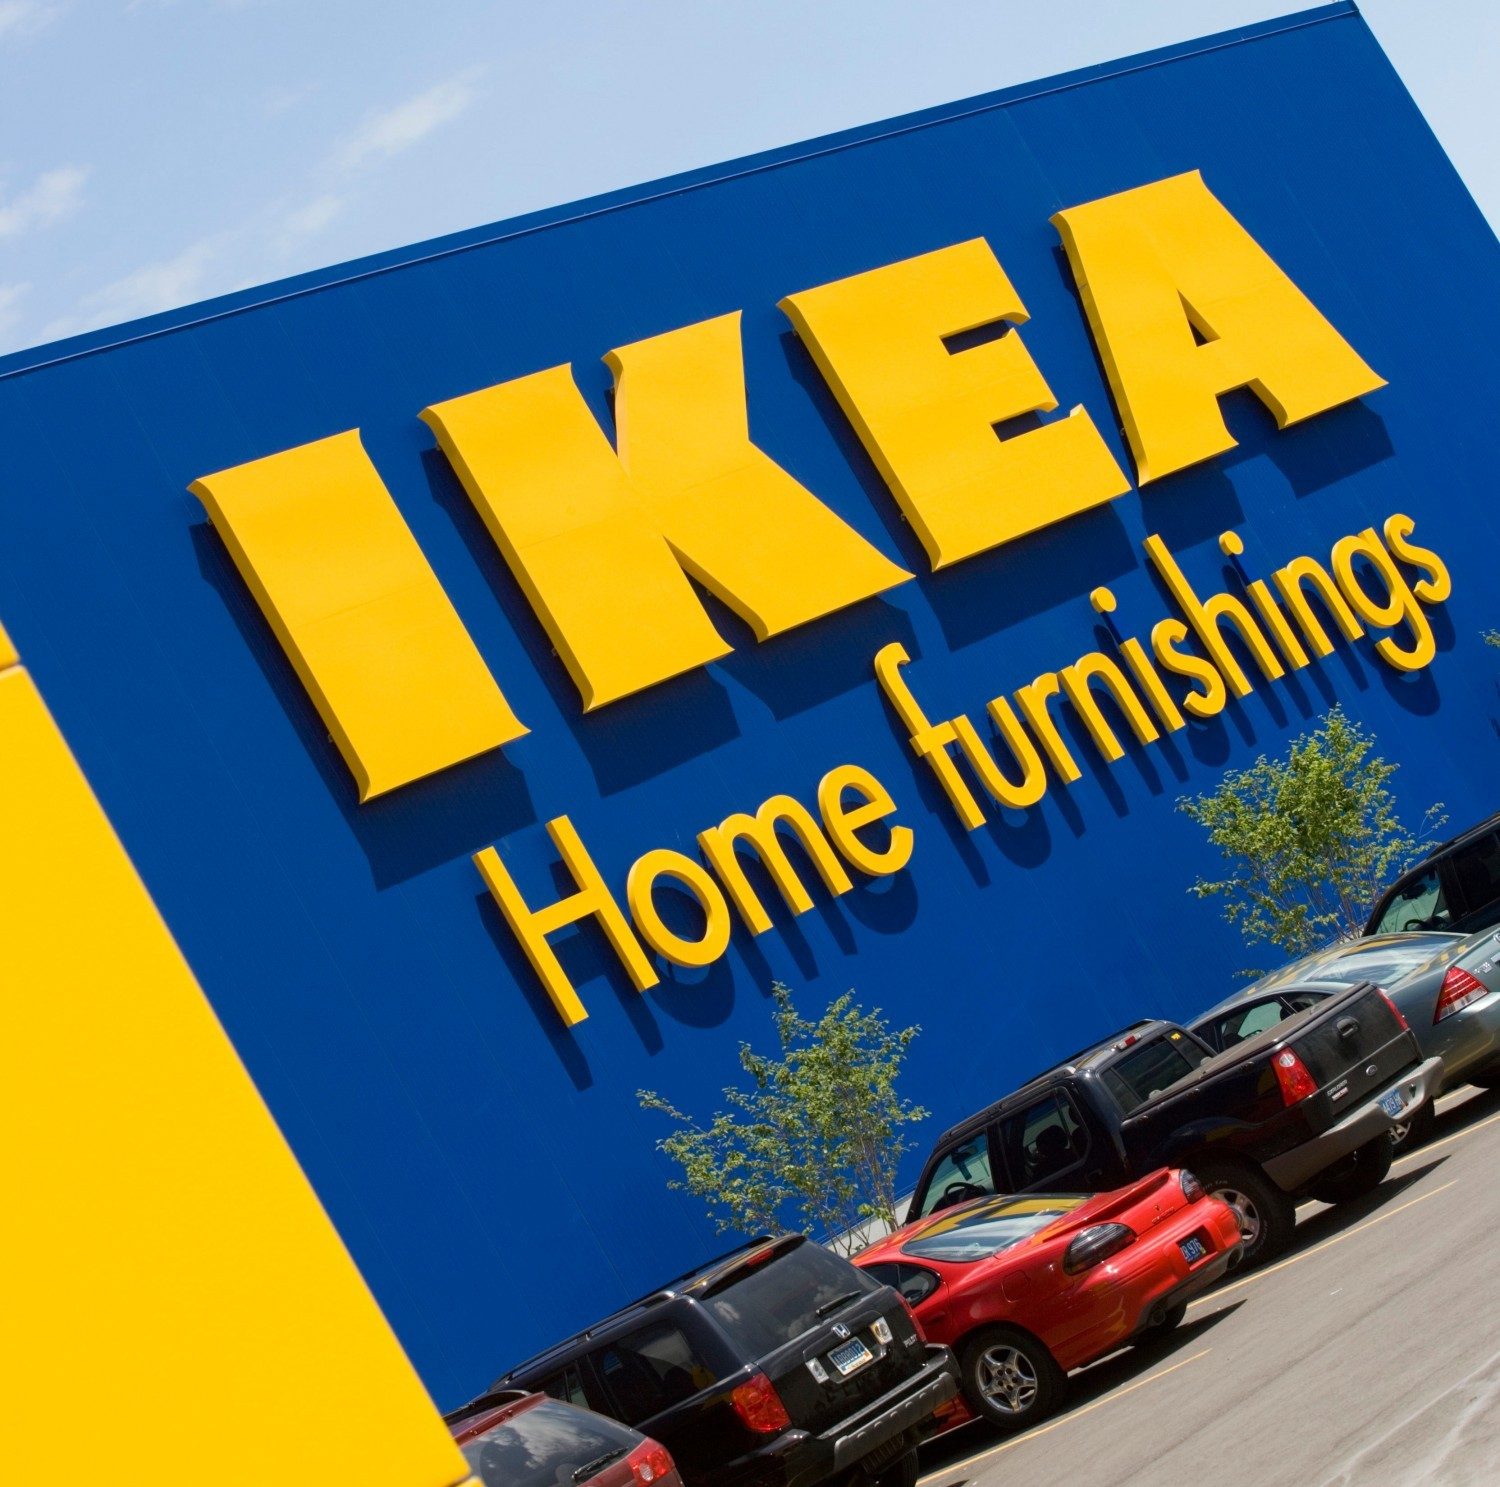 Furniture Store Canton Mi Ikea Home Furnishings Canton Clark Construction Company